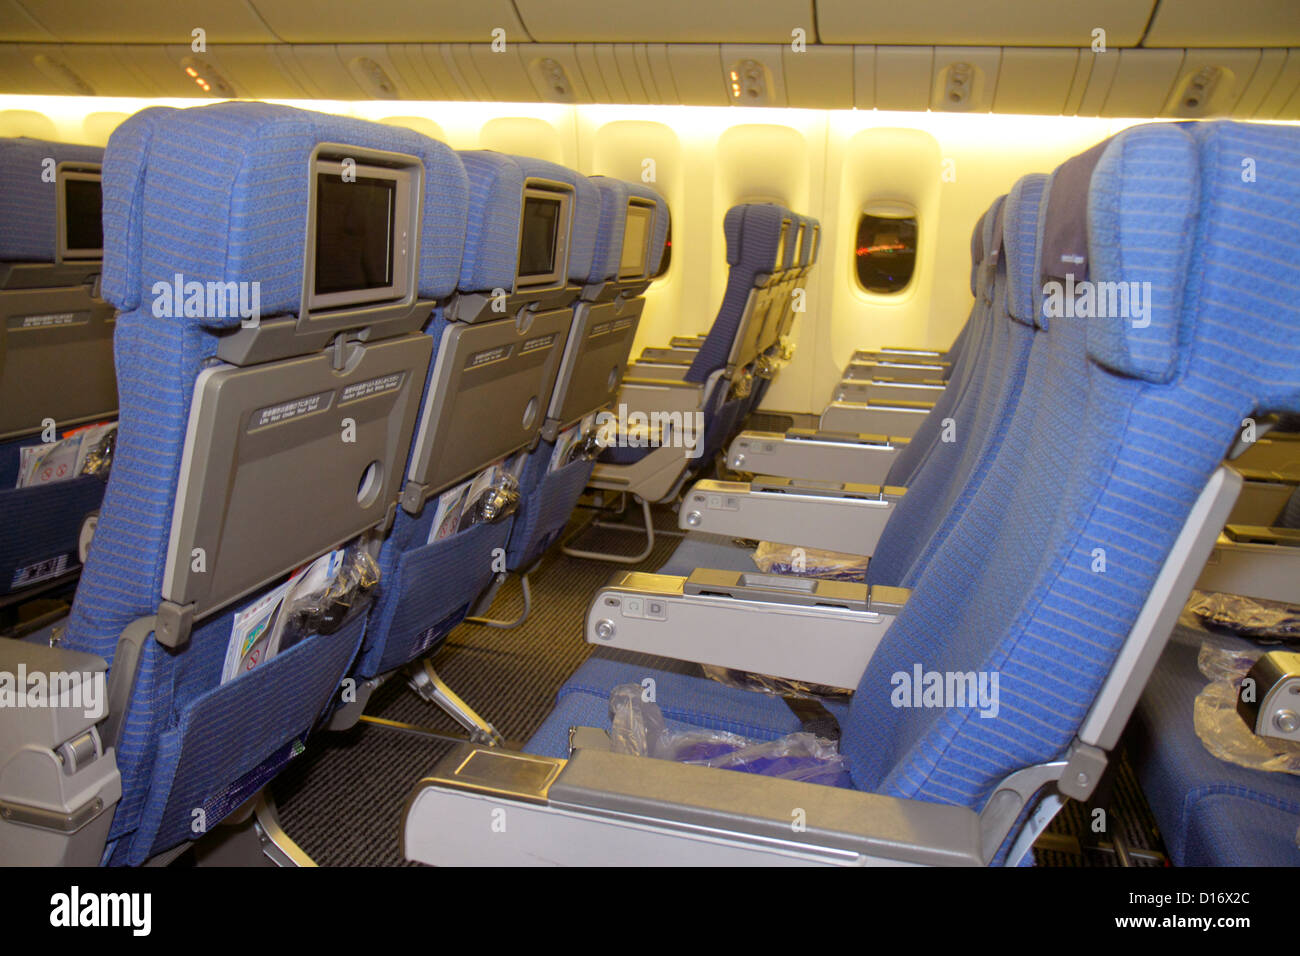 Tokyo Japan Narita International Airport NRT gate area concourse ANA Al Nippon Airways cabin onboard flight to Shanghai - Stock Image